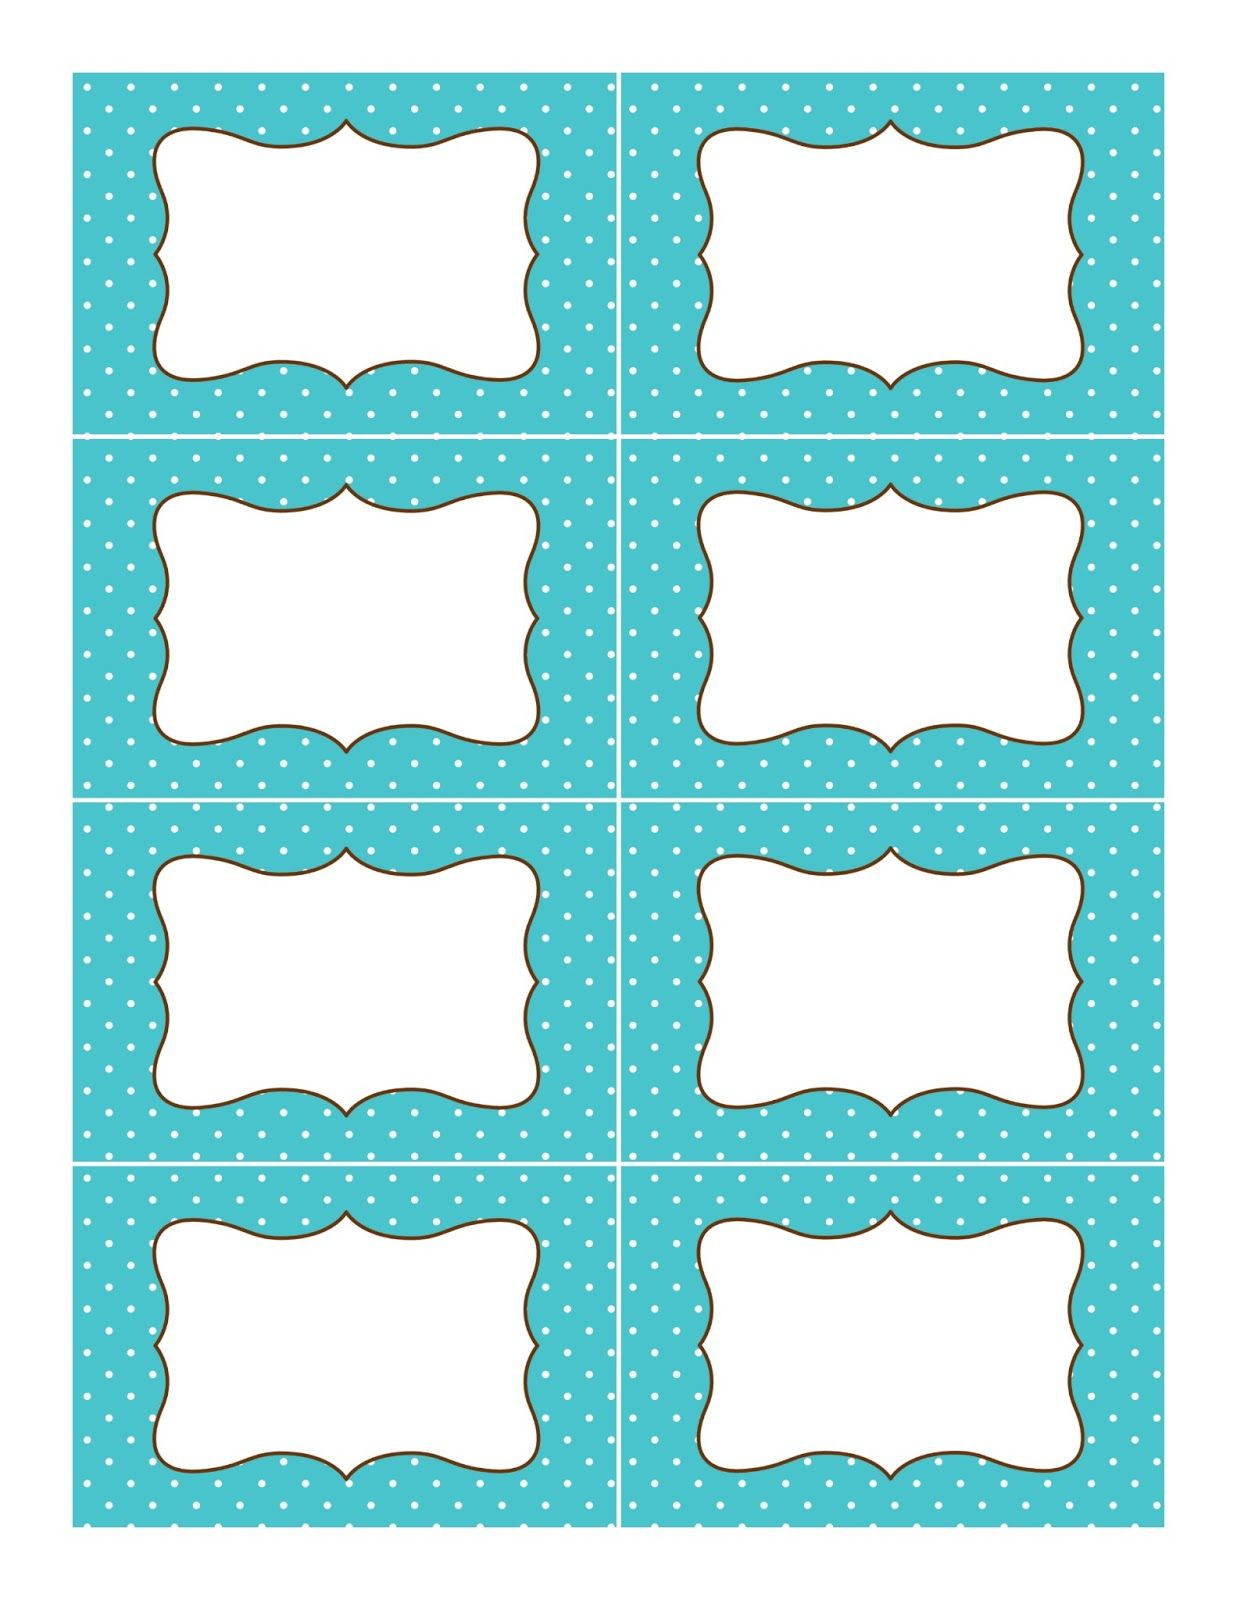 Candy Buffet Supplies: Free Printable Labels   Organization - Free Editable Printable Labels